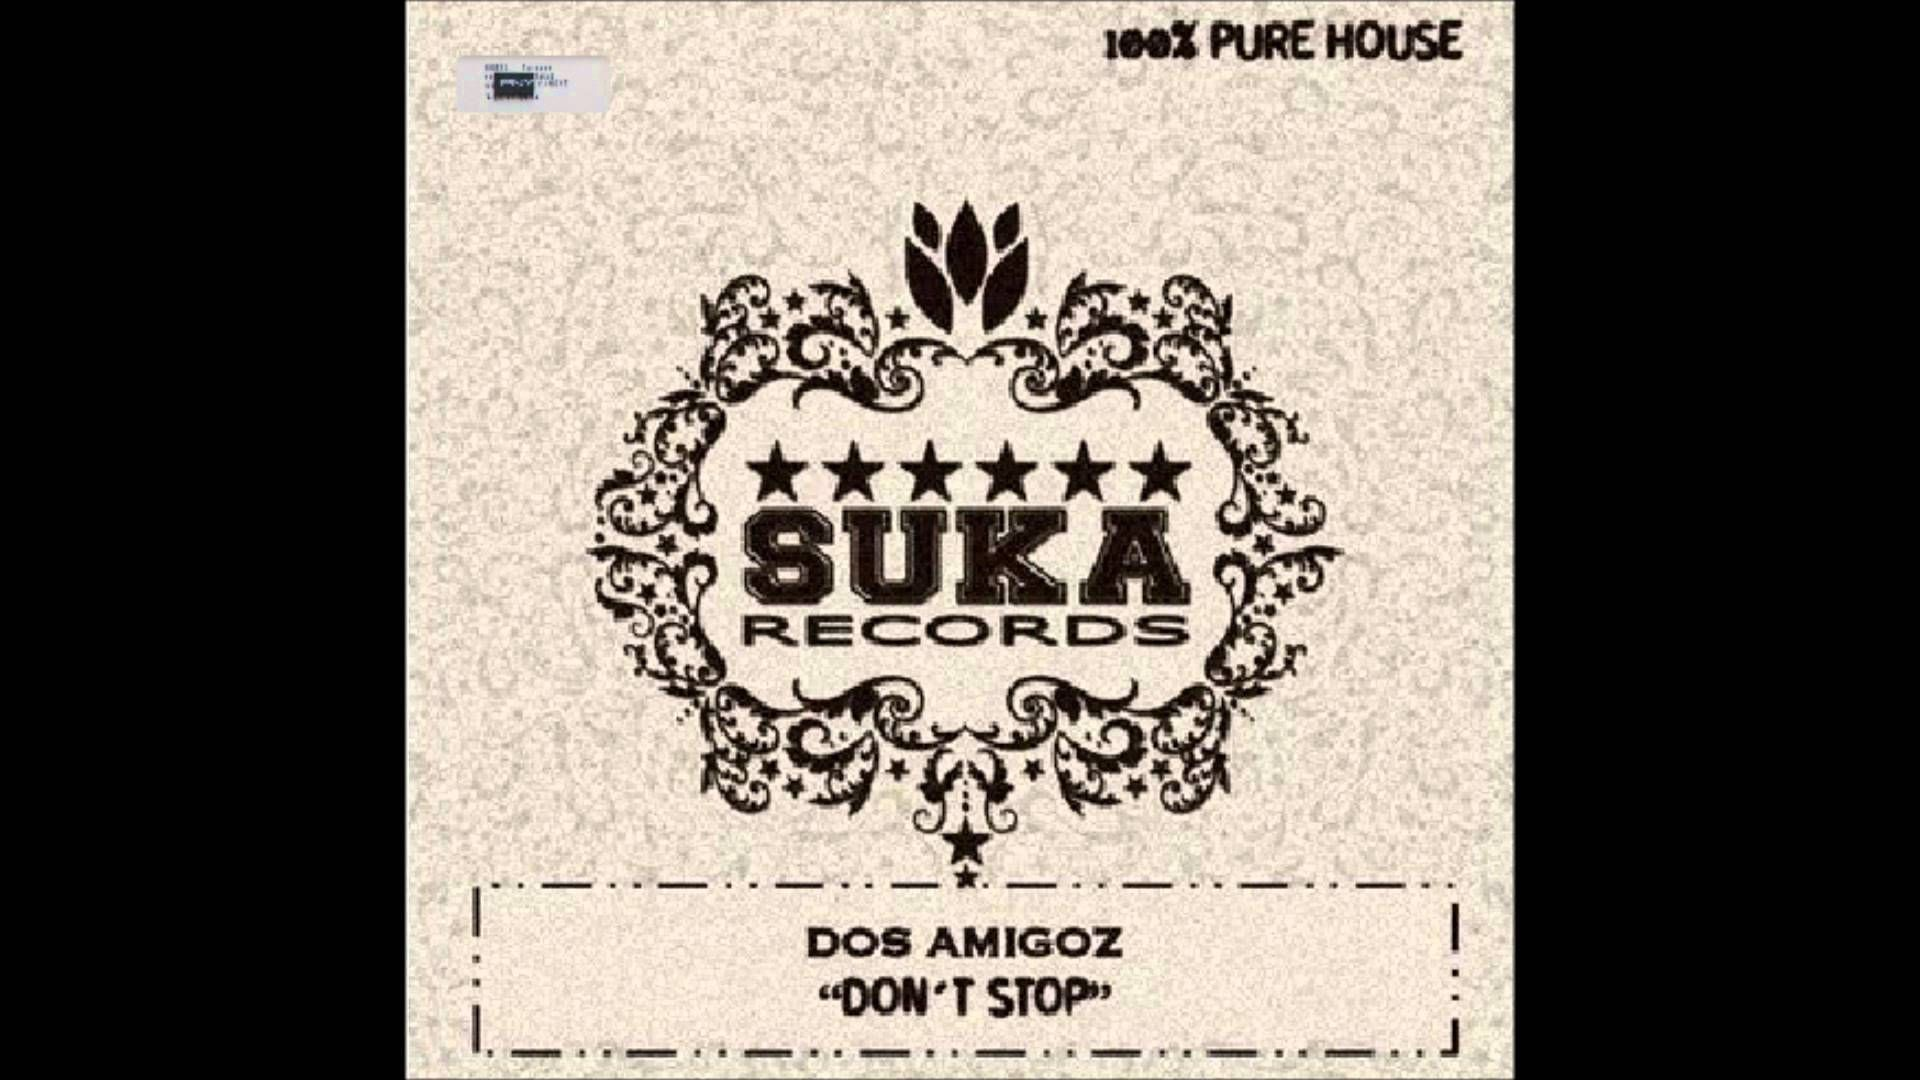 DOS AMIGOZ don't stop (remix) Mp3 song download, Mp3